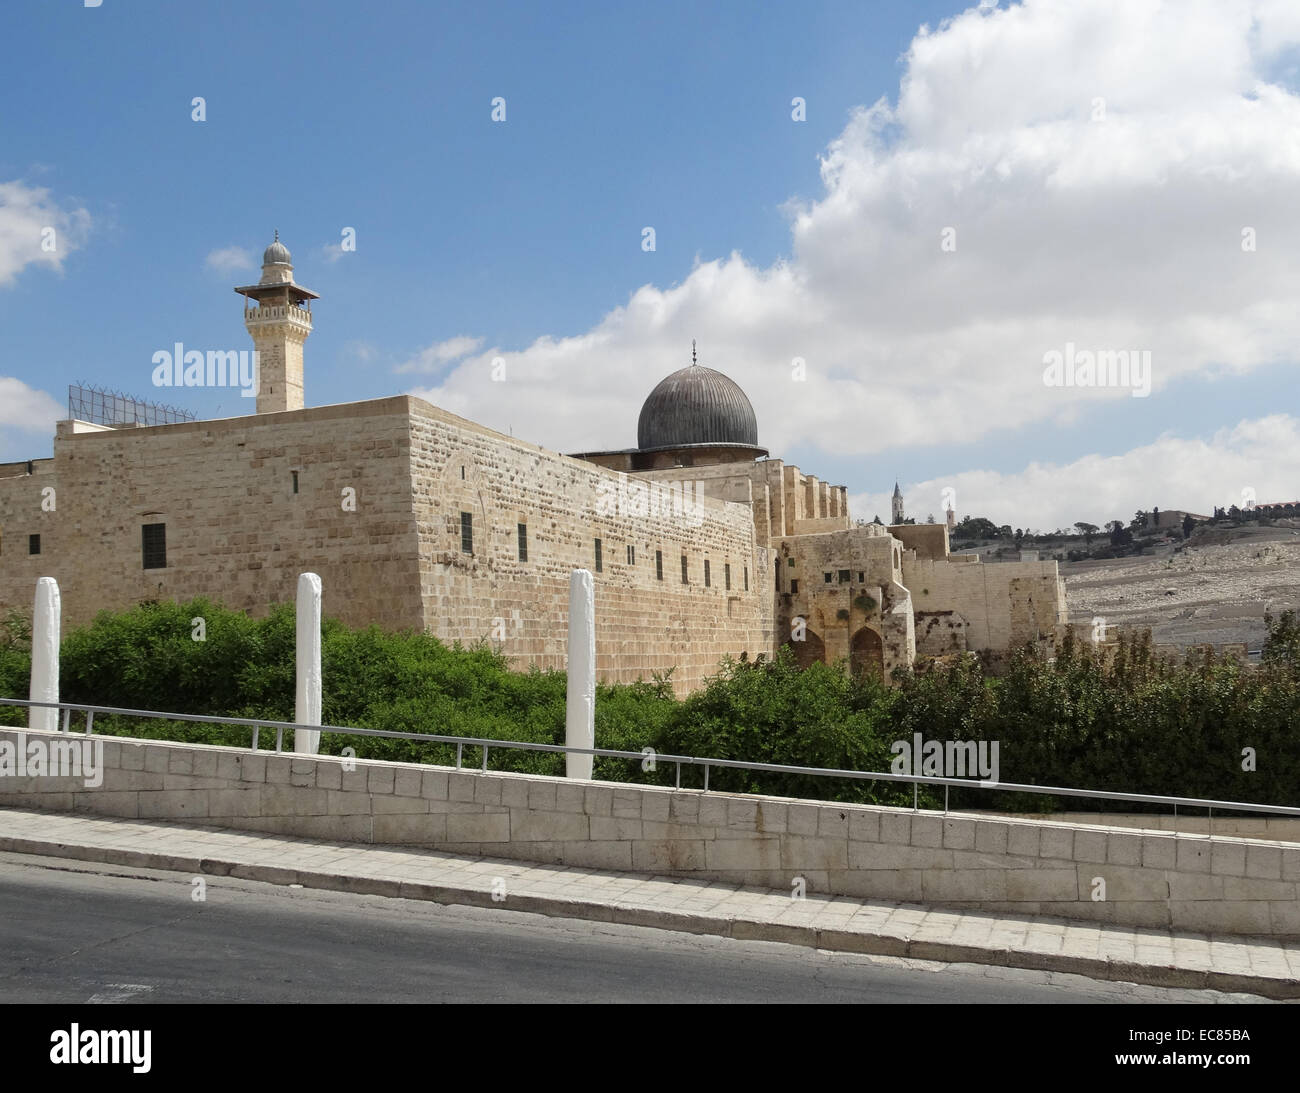 The Al-Aqsa Mosque; the third holiest site in Islam; located in the Old City of Jerusalem. - Stock Image